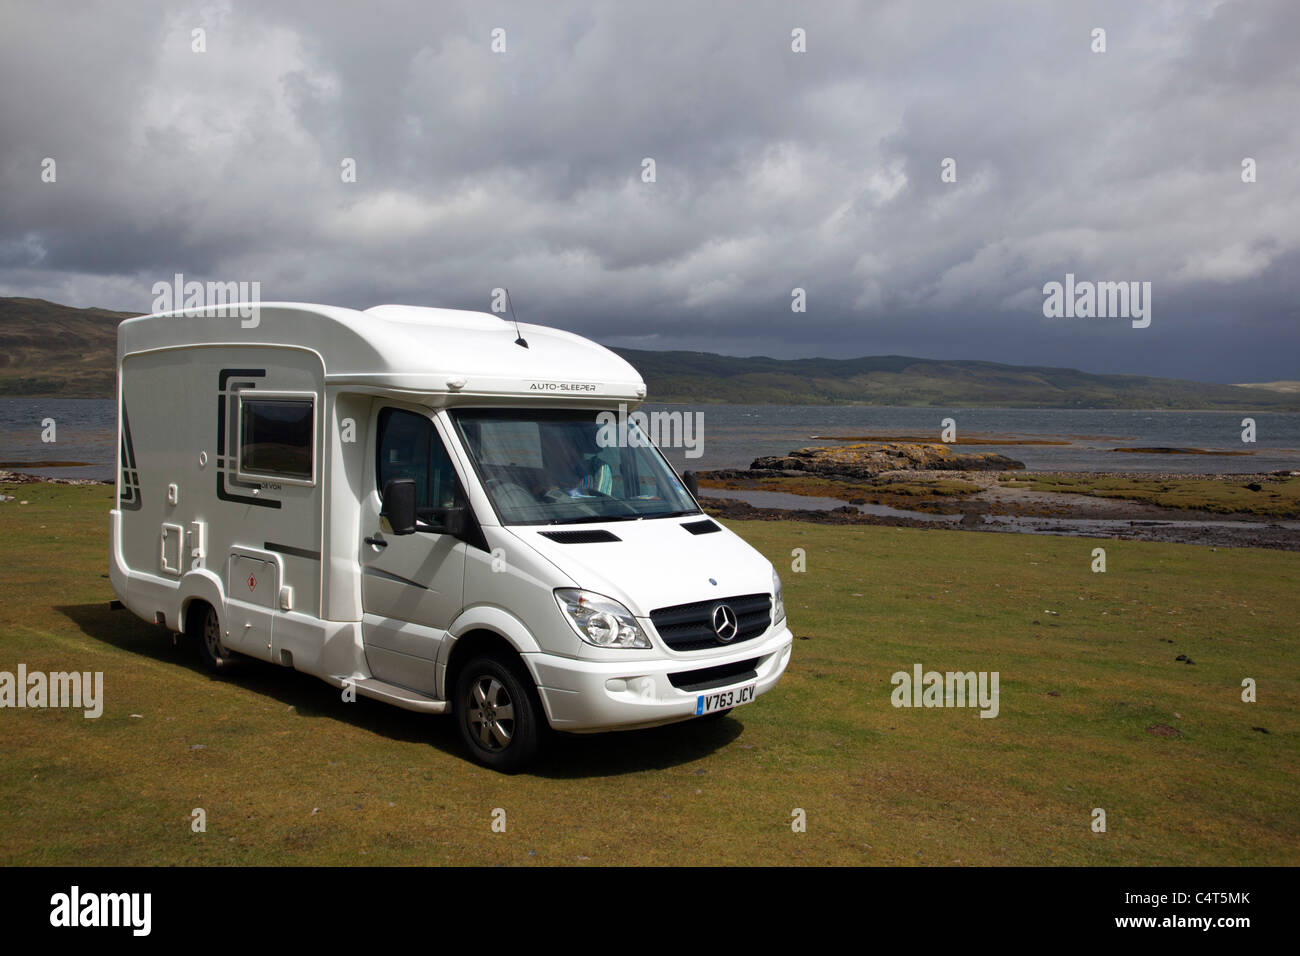 Camper Van parked at Scarisdale Point; Mull; Scotland - Stock Image